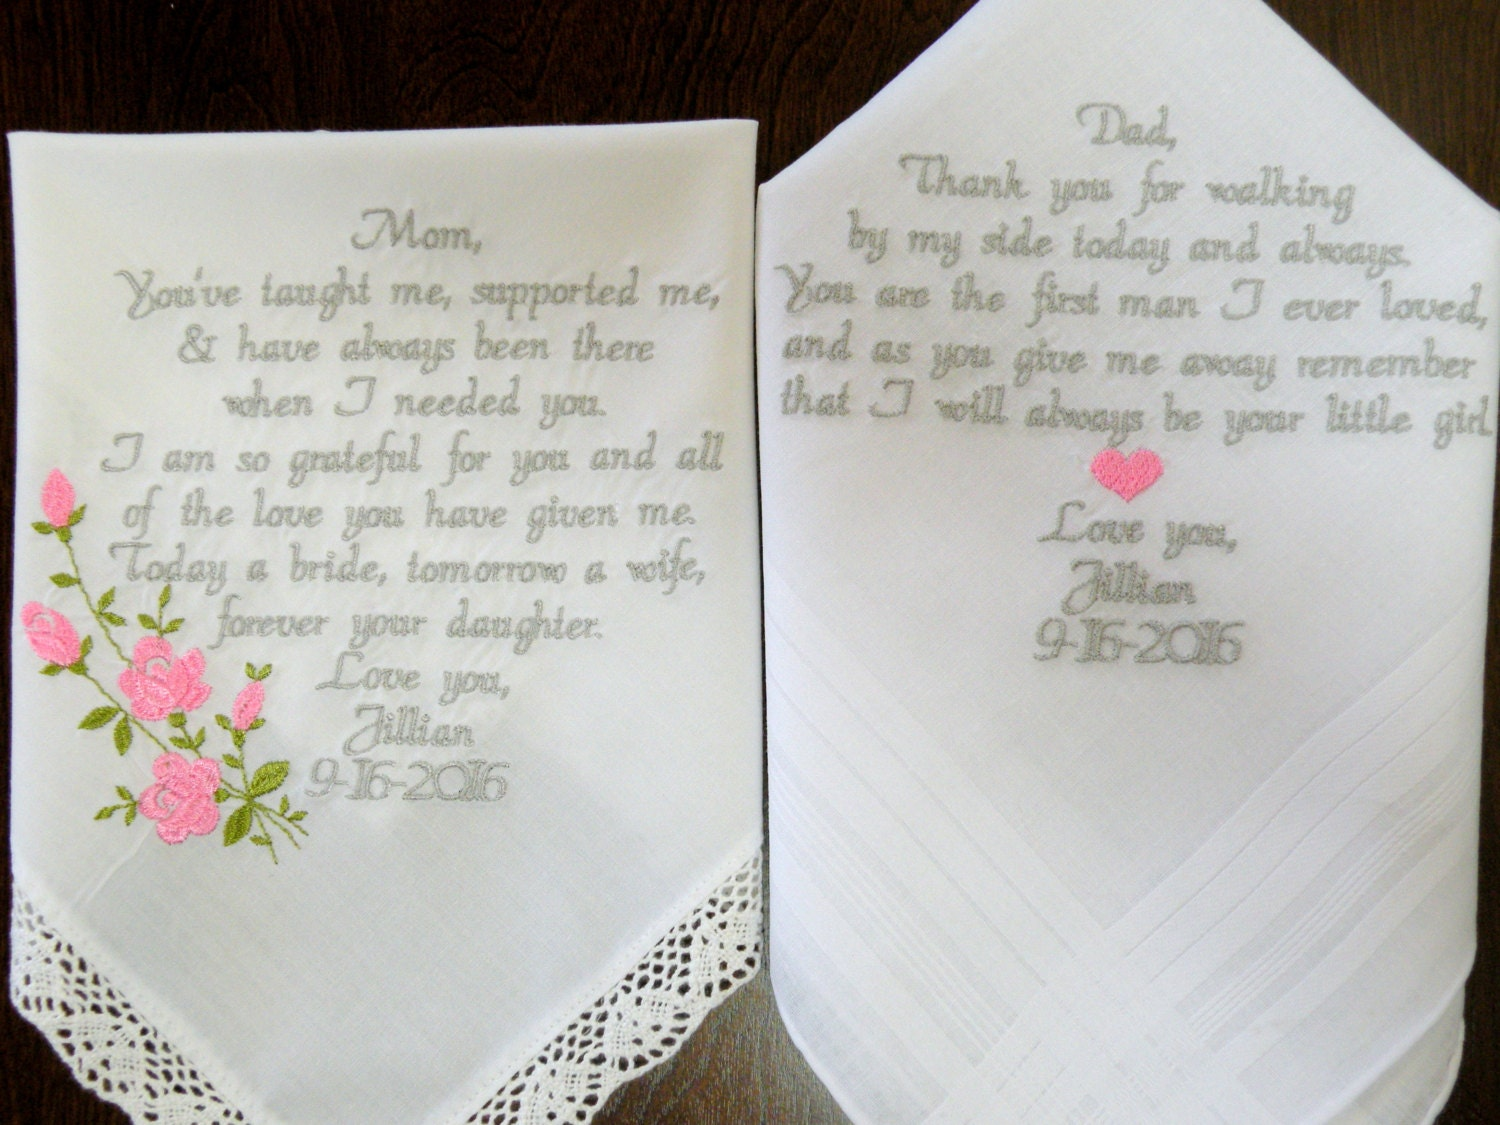 Gifts For Wedding Planning: Mom And Dad Wedding Day Gift Wedding Planning For Gifts On